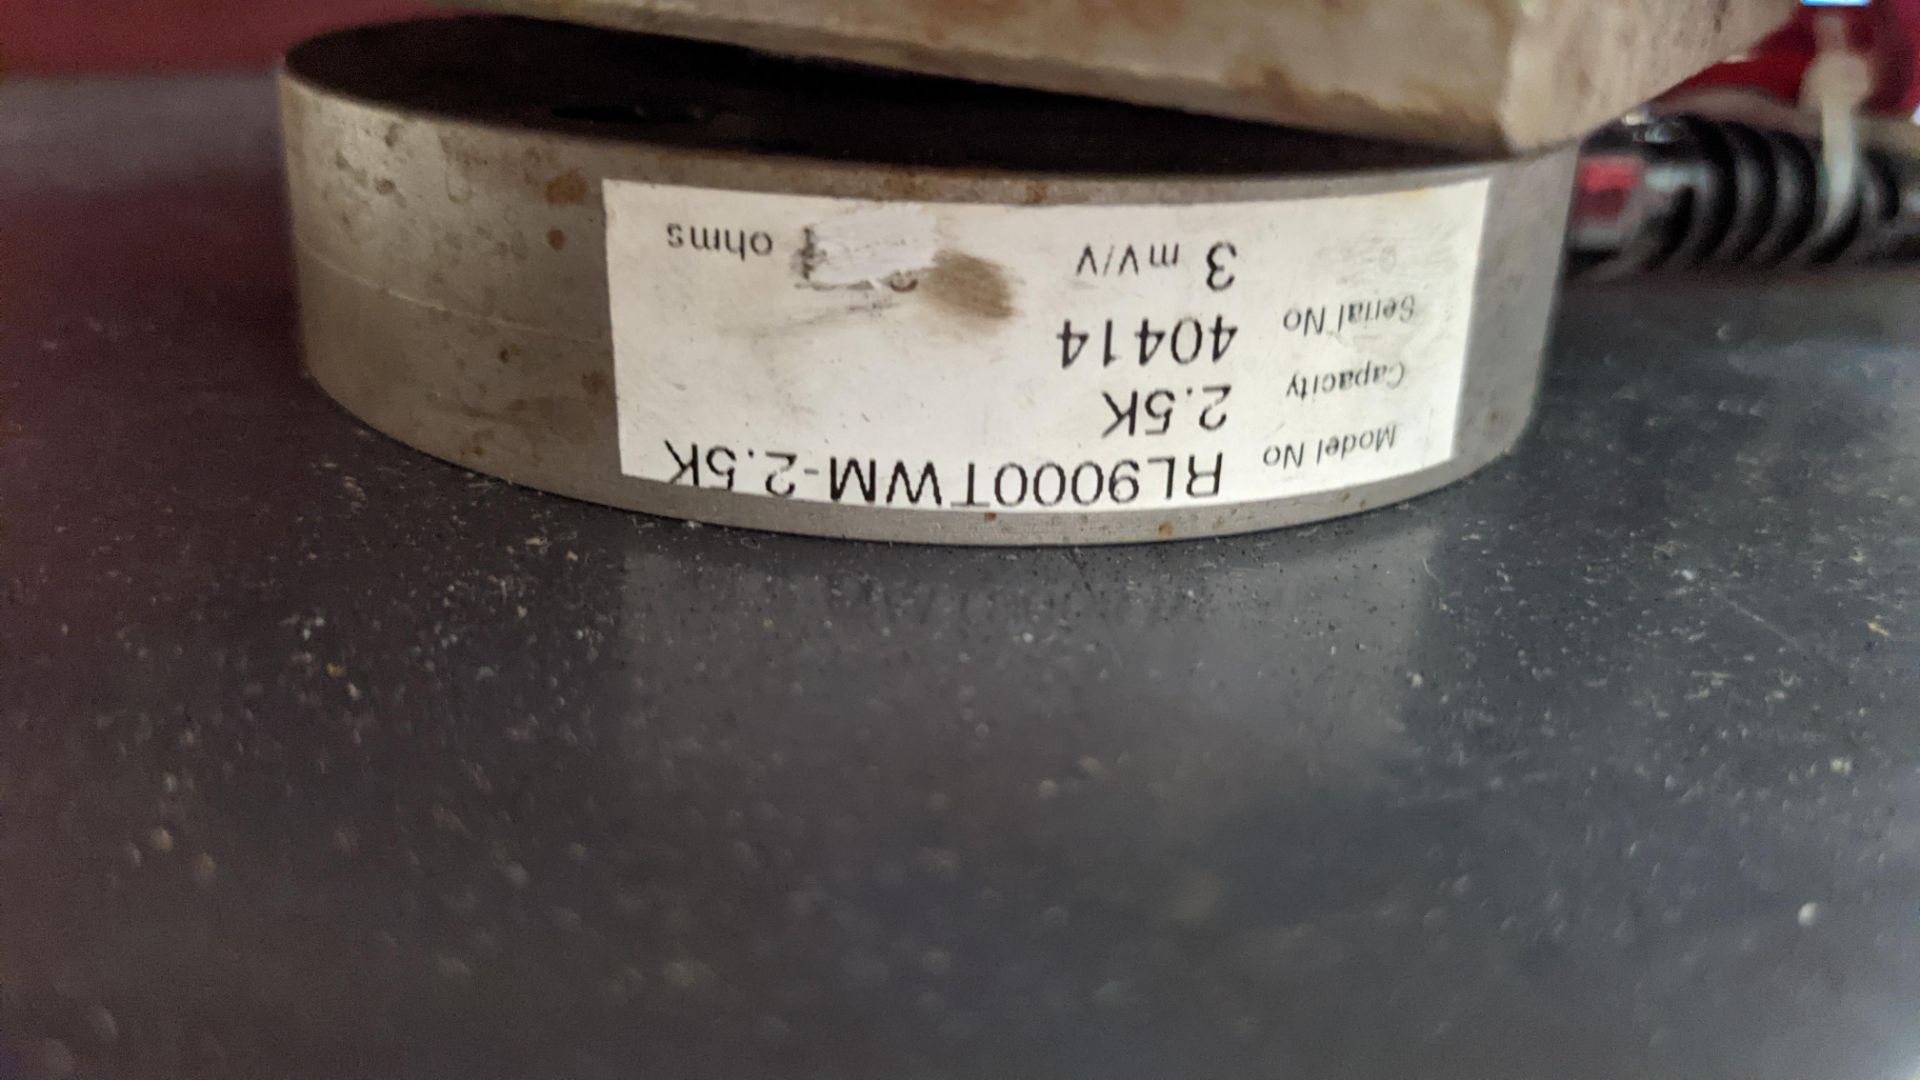 LOT OF RICE LAKE LOAD CELLS - Image 7 of 8